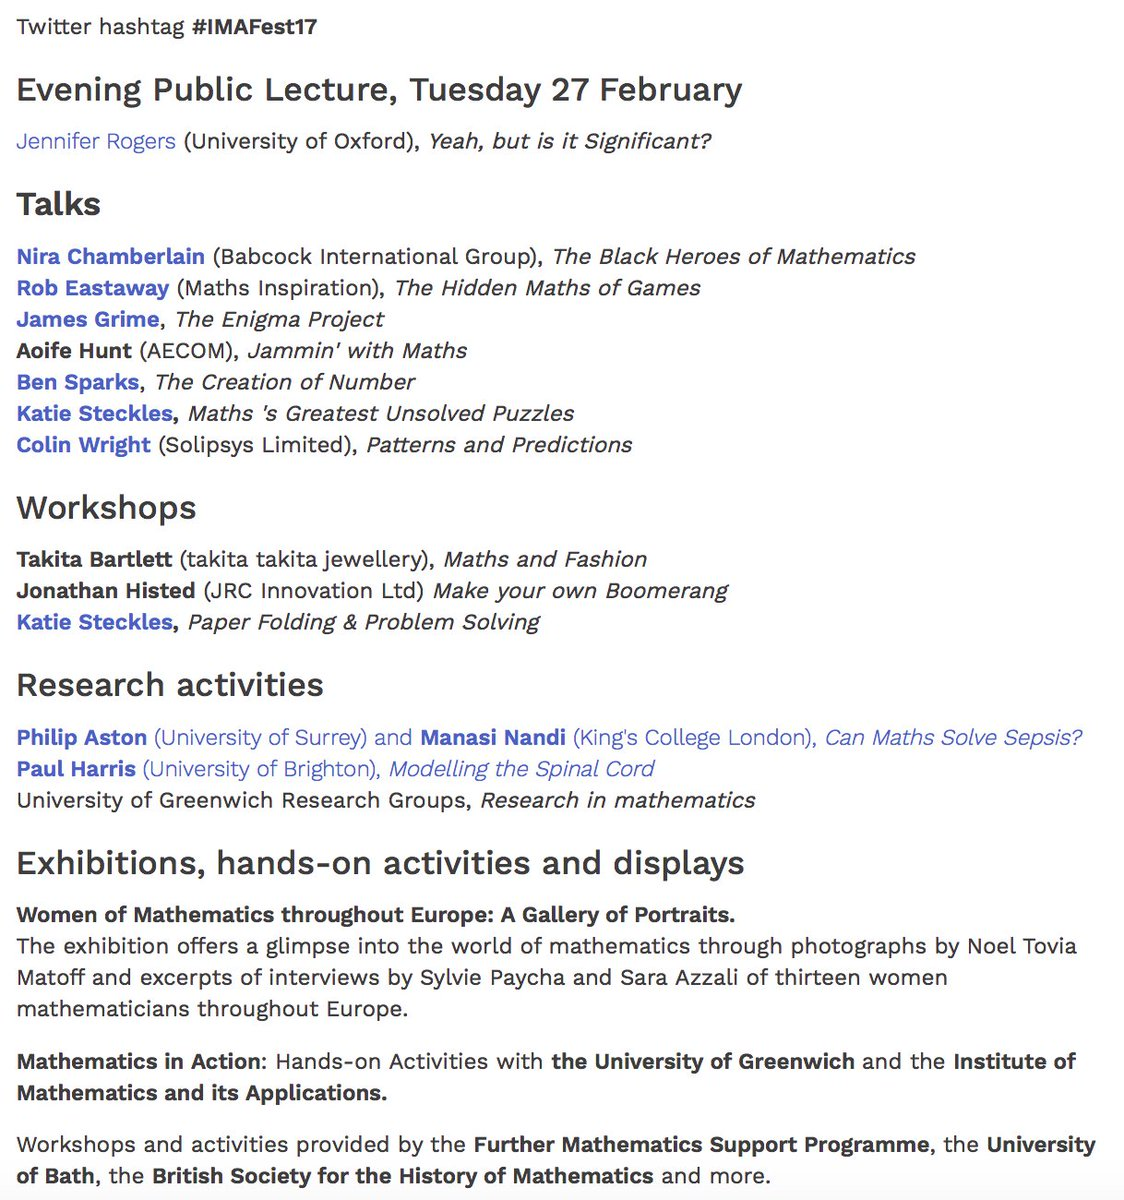 Dr jess wade on twitter gmtgreenwich maths time dr jess wade on twitter gmtgreenwich maths time origami enigma machinesmodelling disease future mathmos imafest17 has it all ibookread PDF